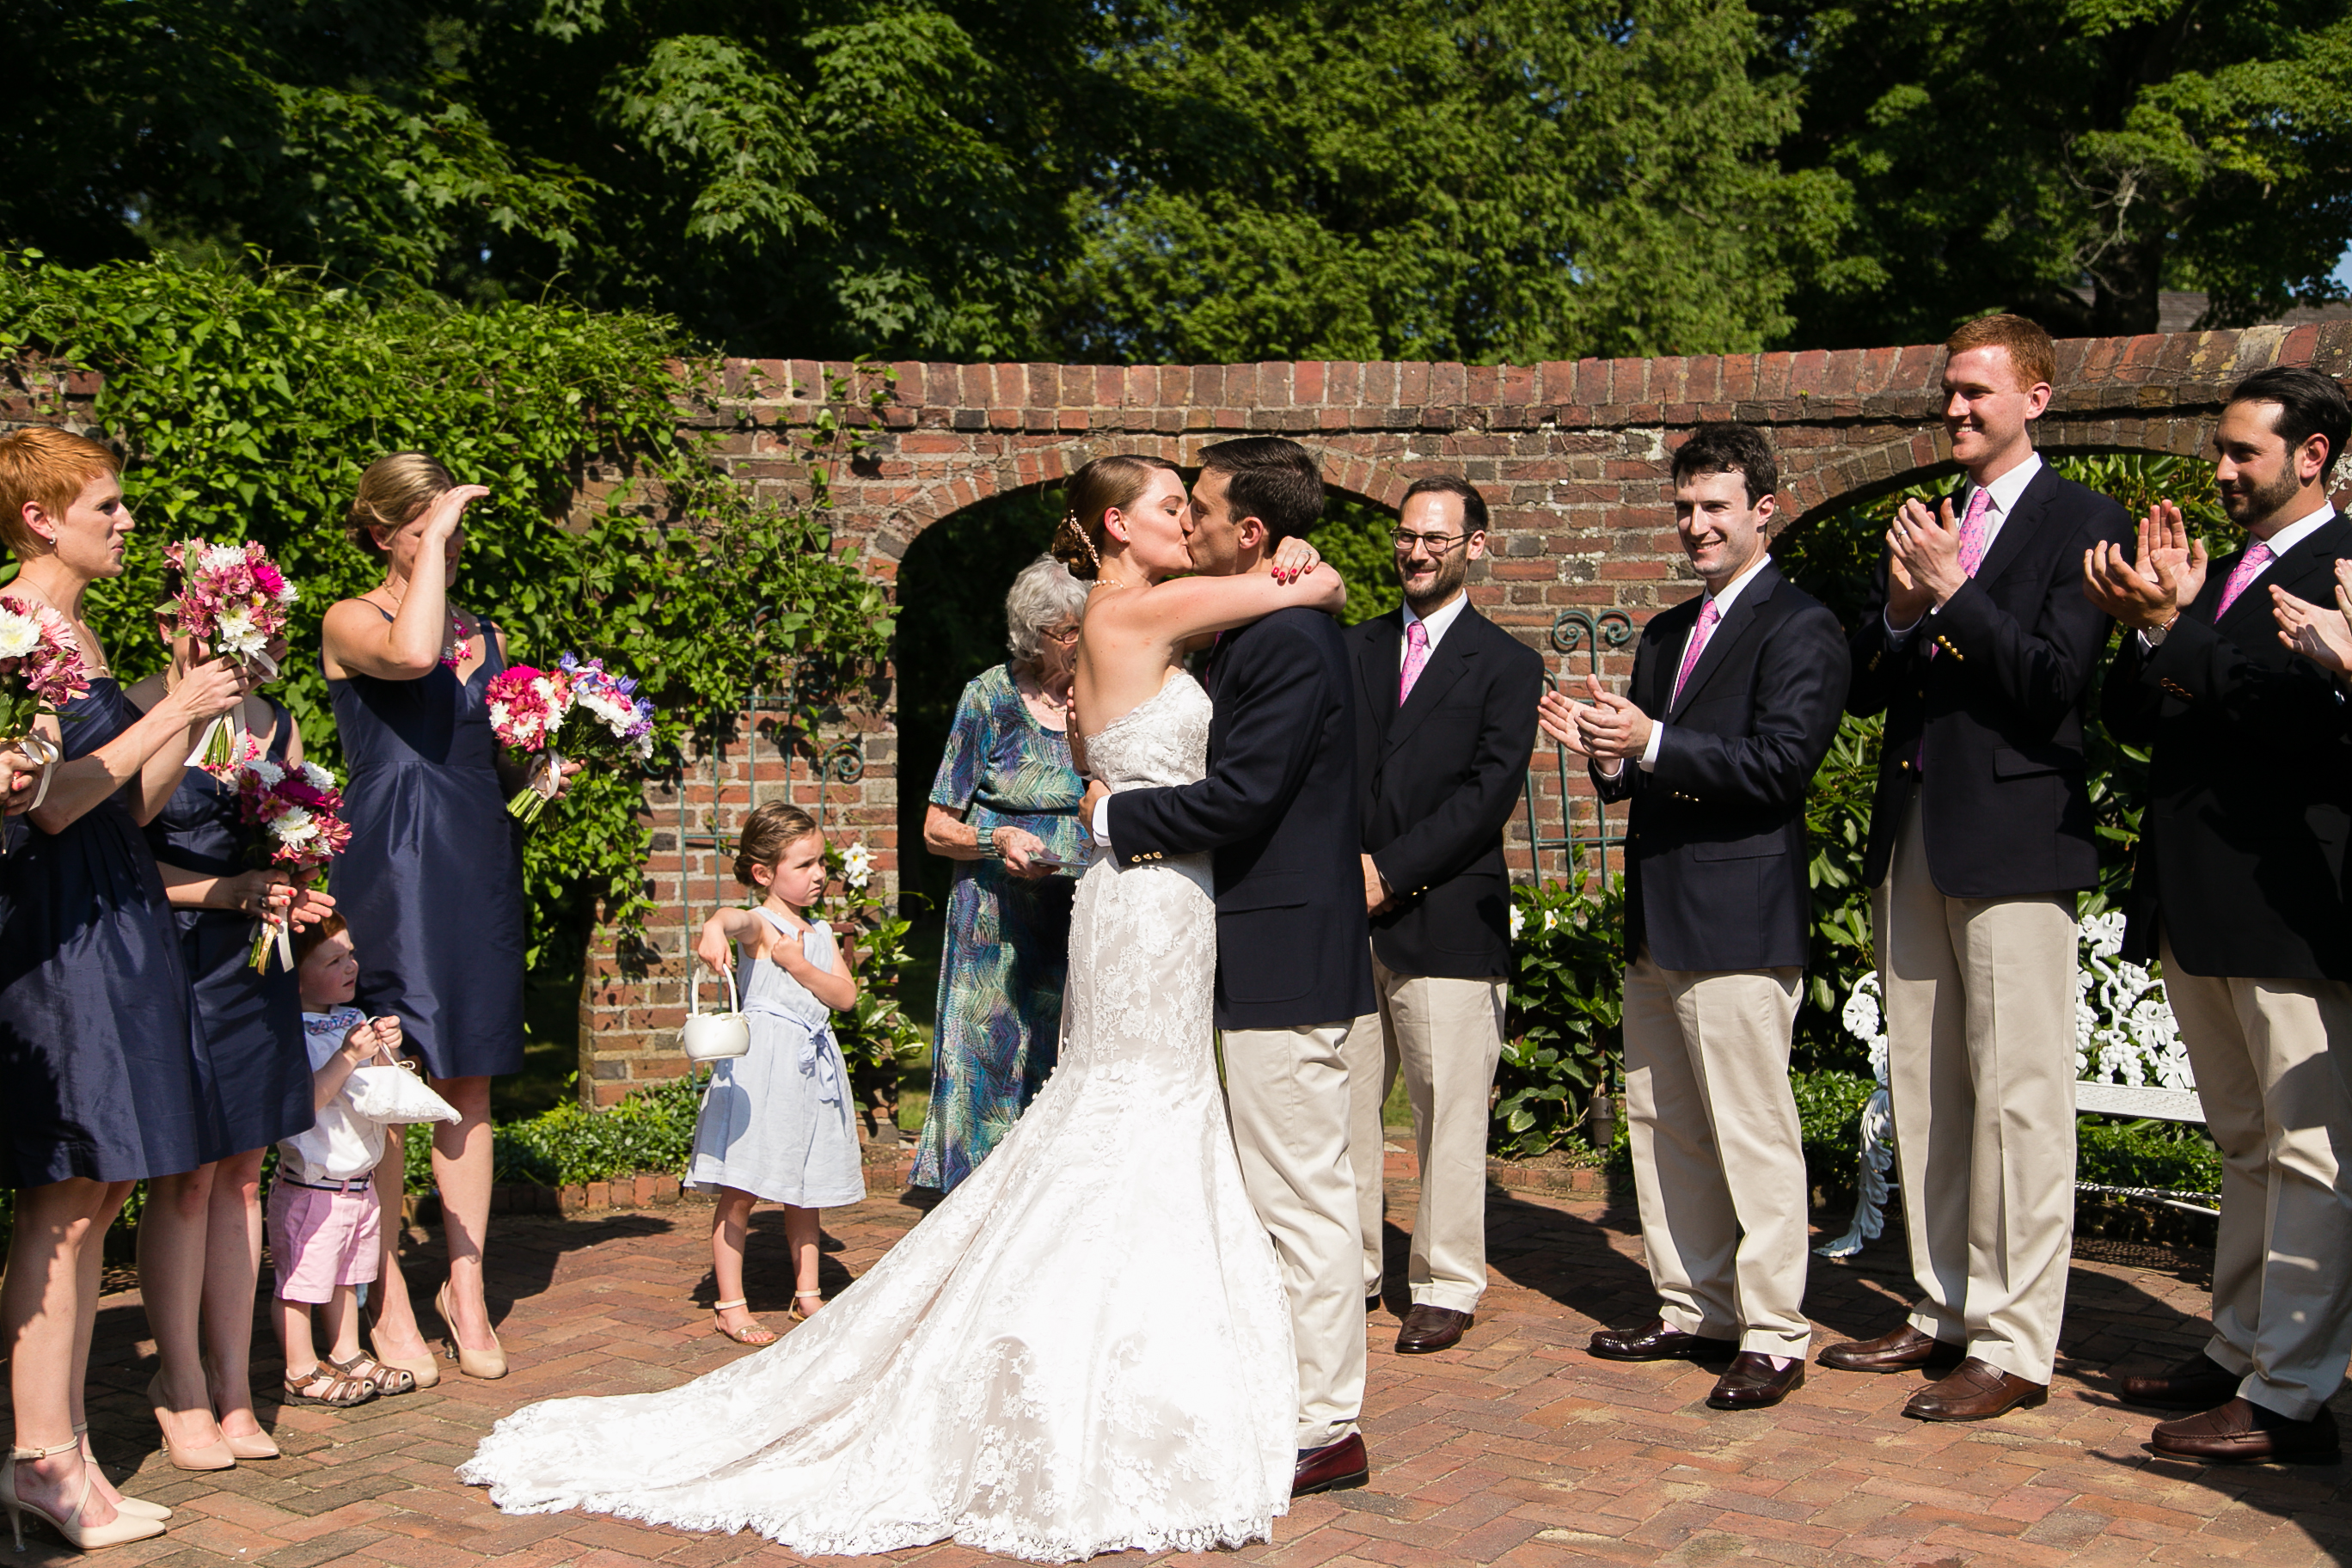 The bride and groom make it official during their intimate garden ceremony at Keller Tavern in Ridgefield, CT